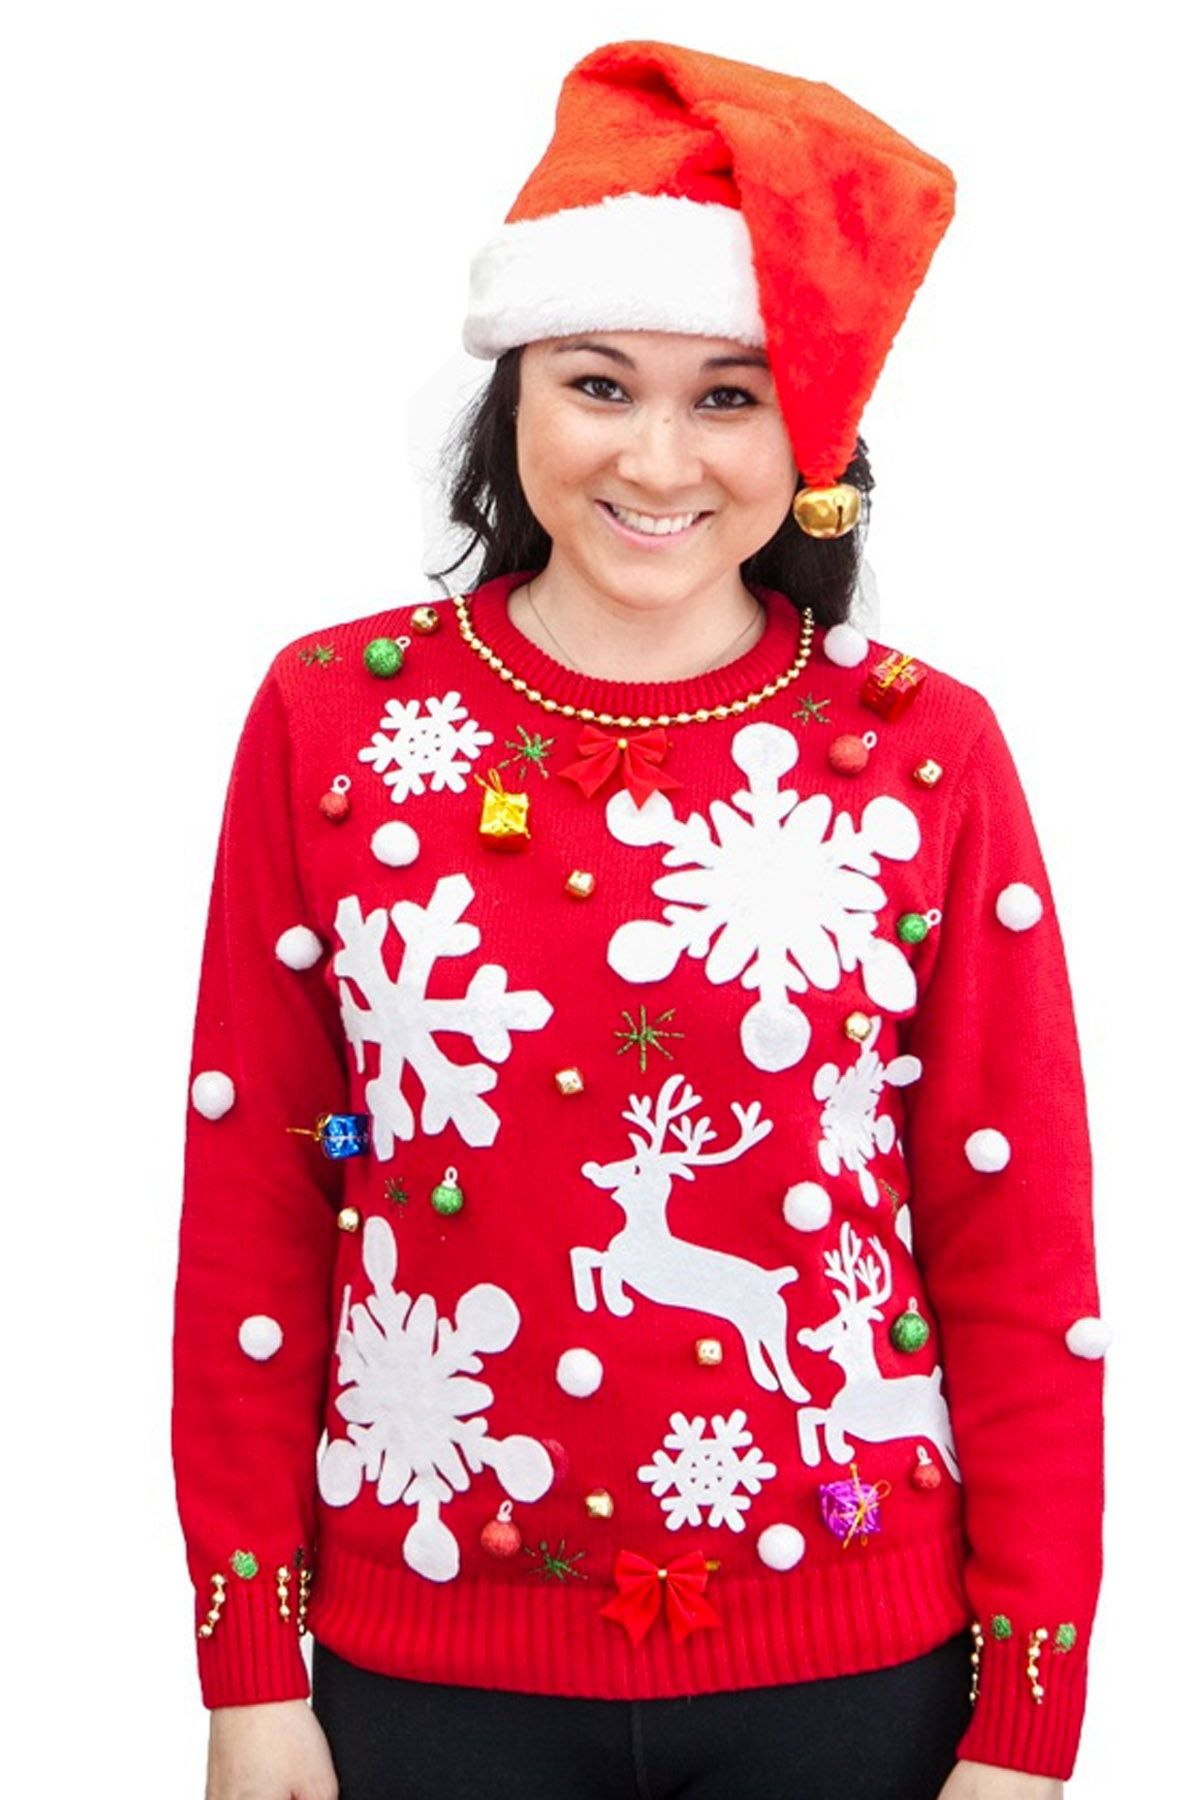 59e3022f263 22 Ugly Christmas Sweater Ideas to Buy and DIY - Tacky Christmas Sweaters  for Women